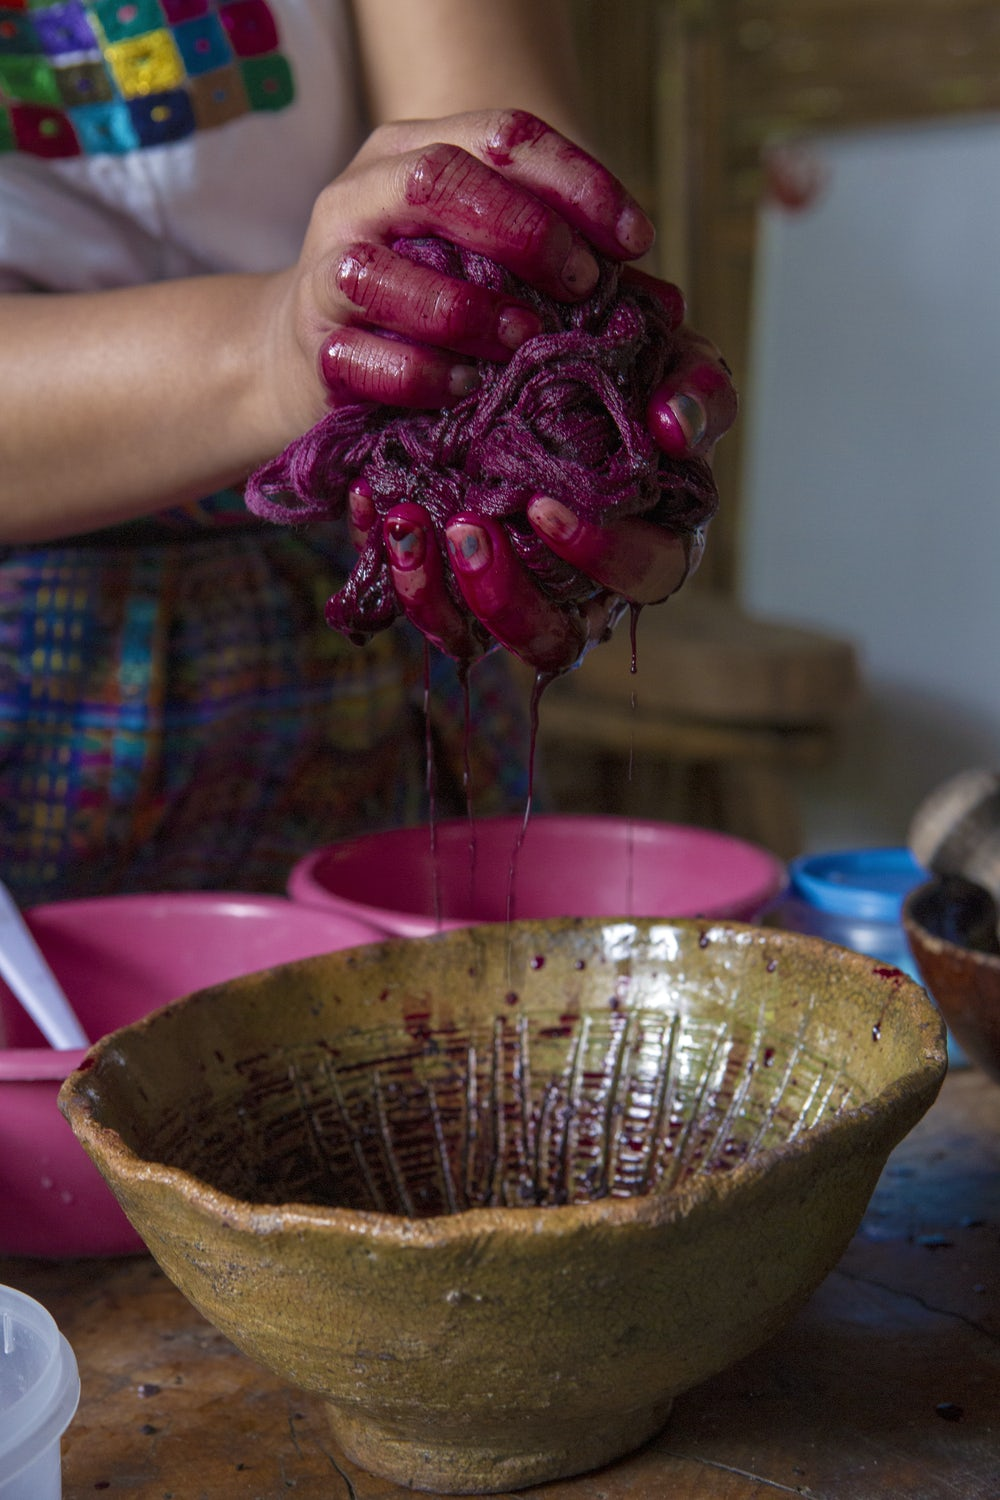 Close up of hands squeezing excess red carmine dye from a skein of cotton yarn